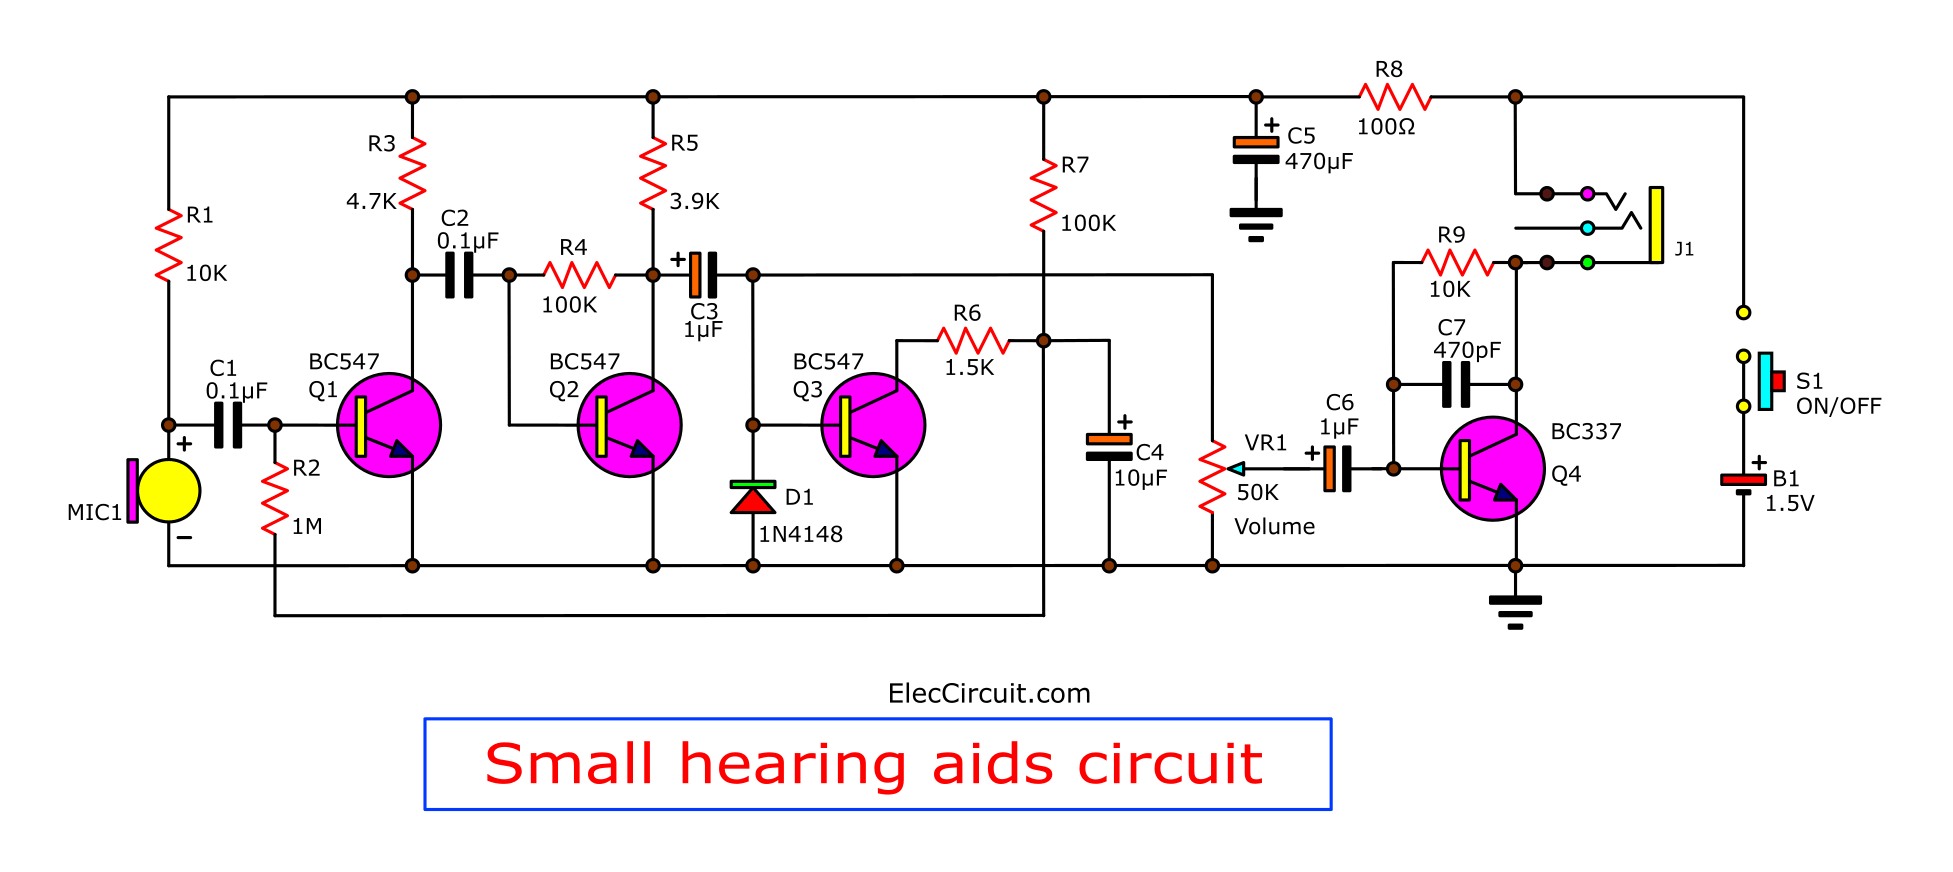 the cheap small hearing aids circuit project eleccircuit rh eleccircuit com